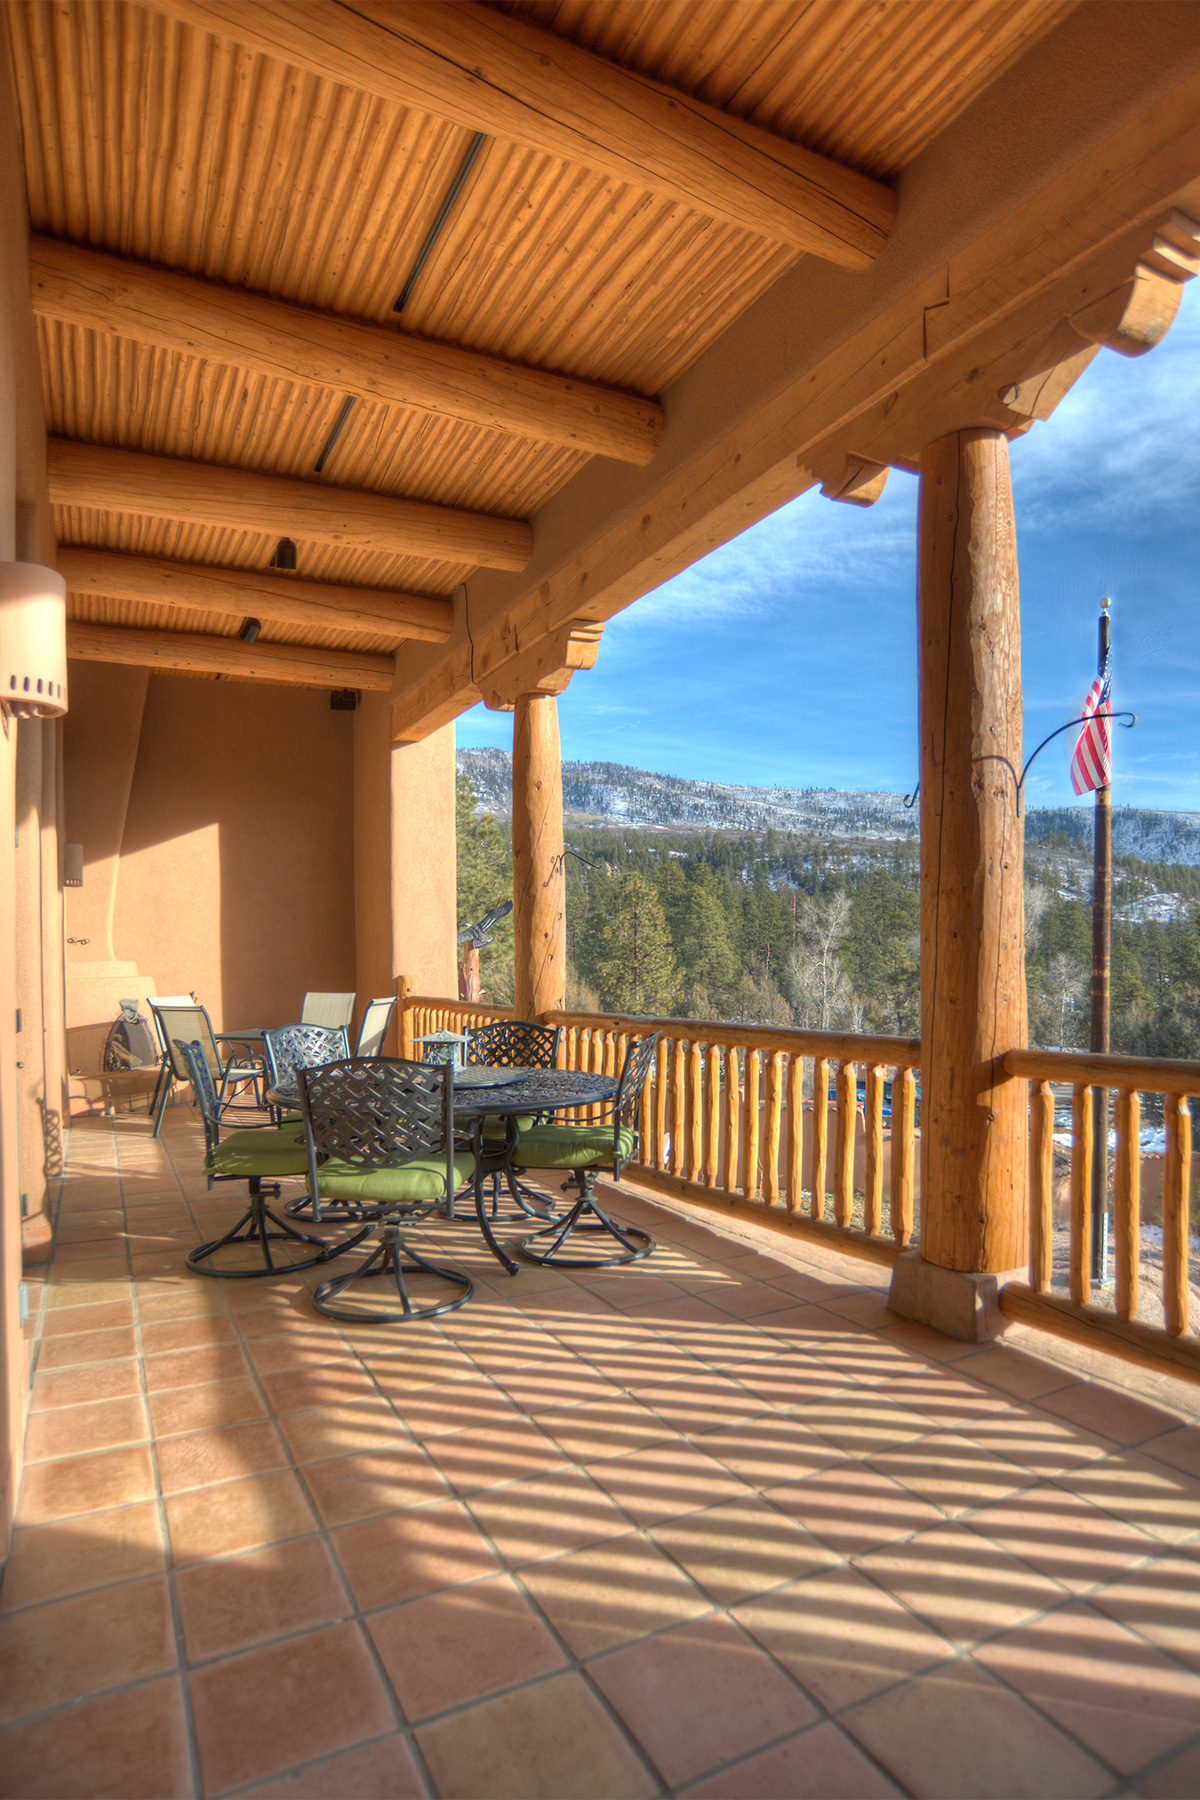 Additional photo for property listing at 1401 Celadon Drive 1401 Celadon Drive East Durango, Colorado 81301 United States